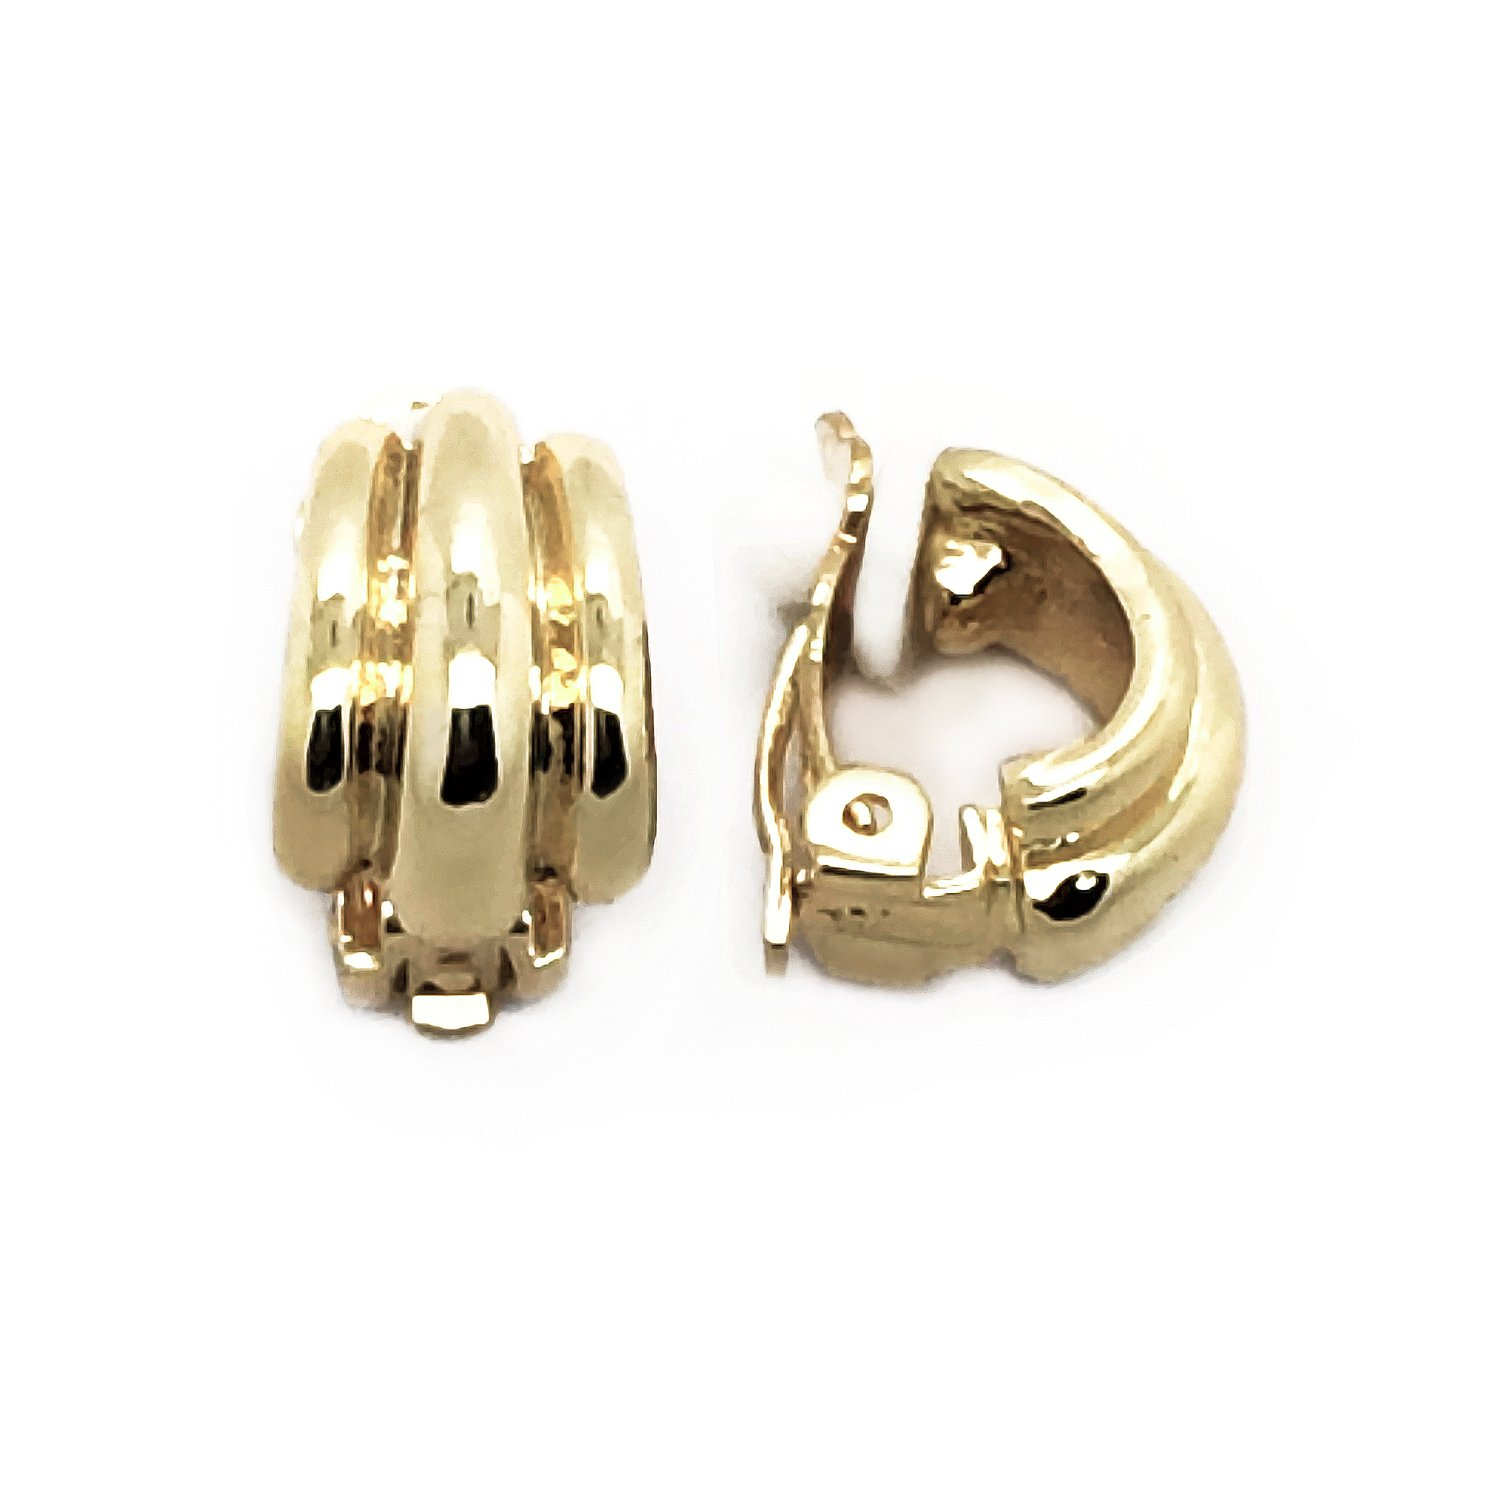 Clip On Earrings Small Gold Plated Minimalist Style Women Fashion